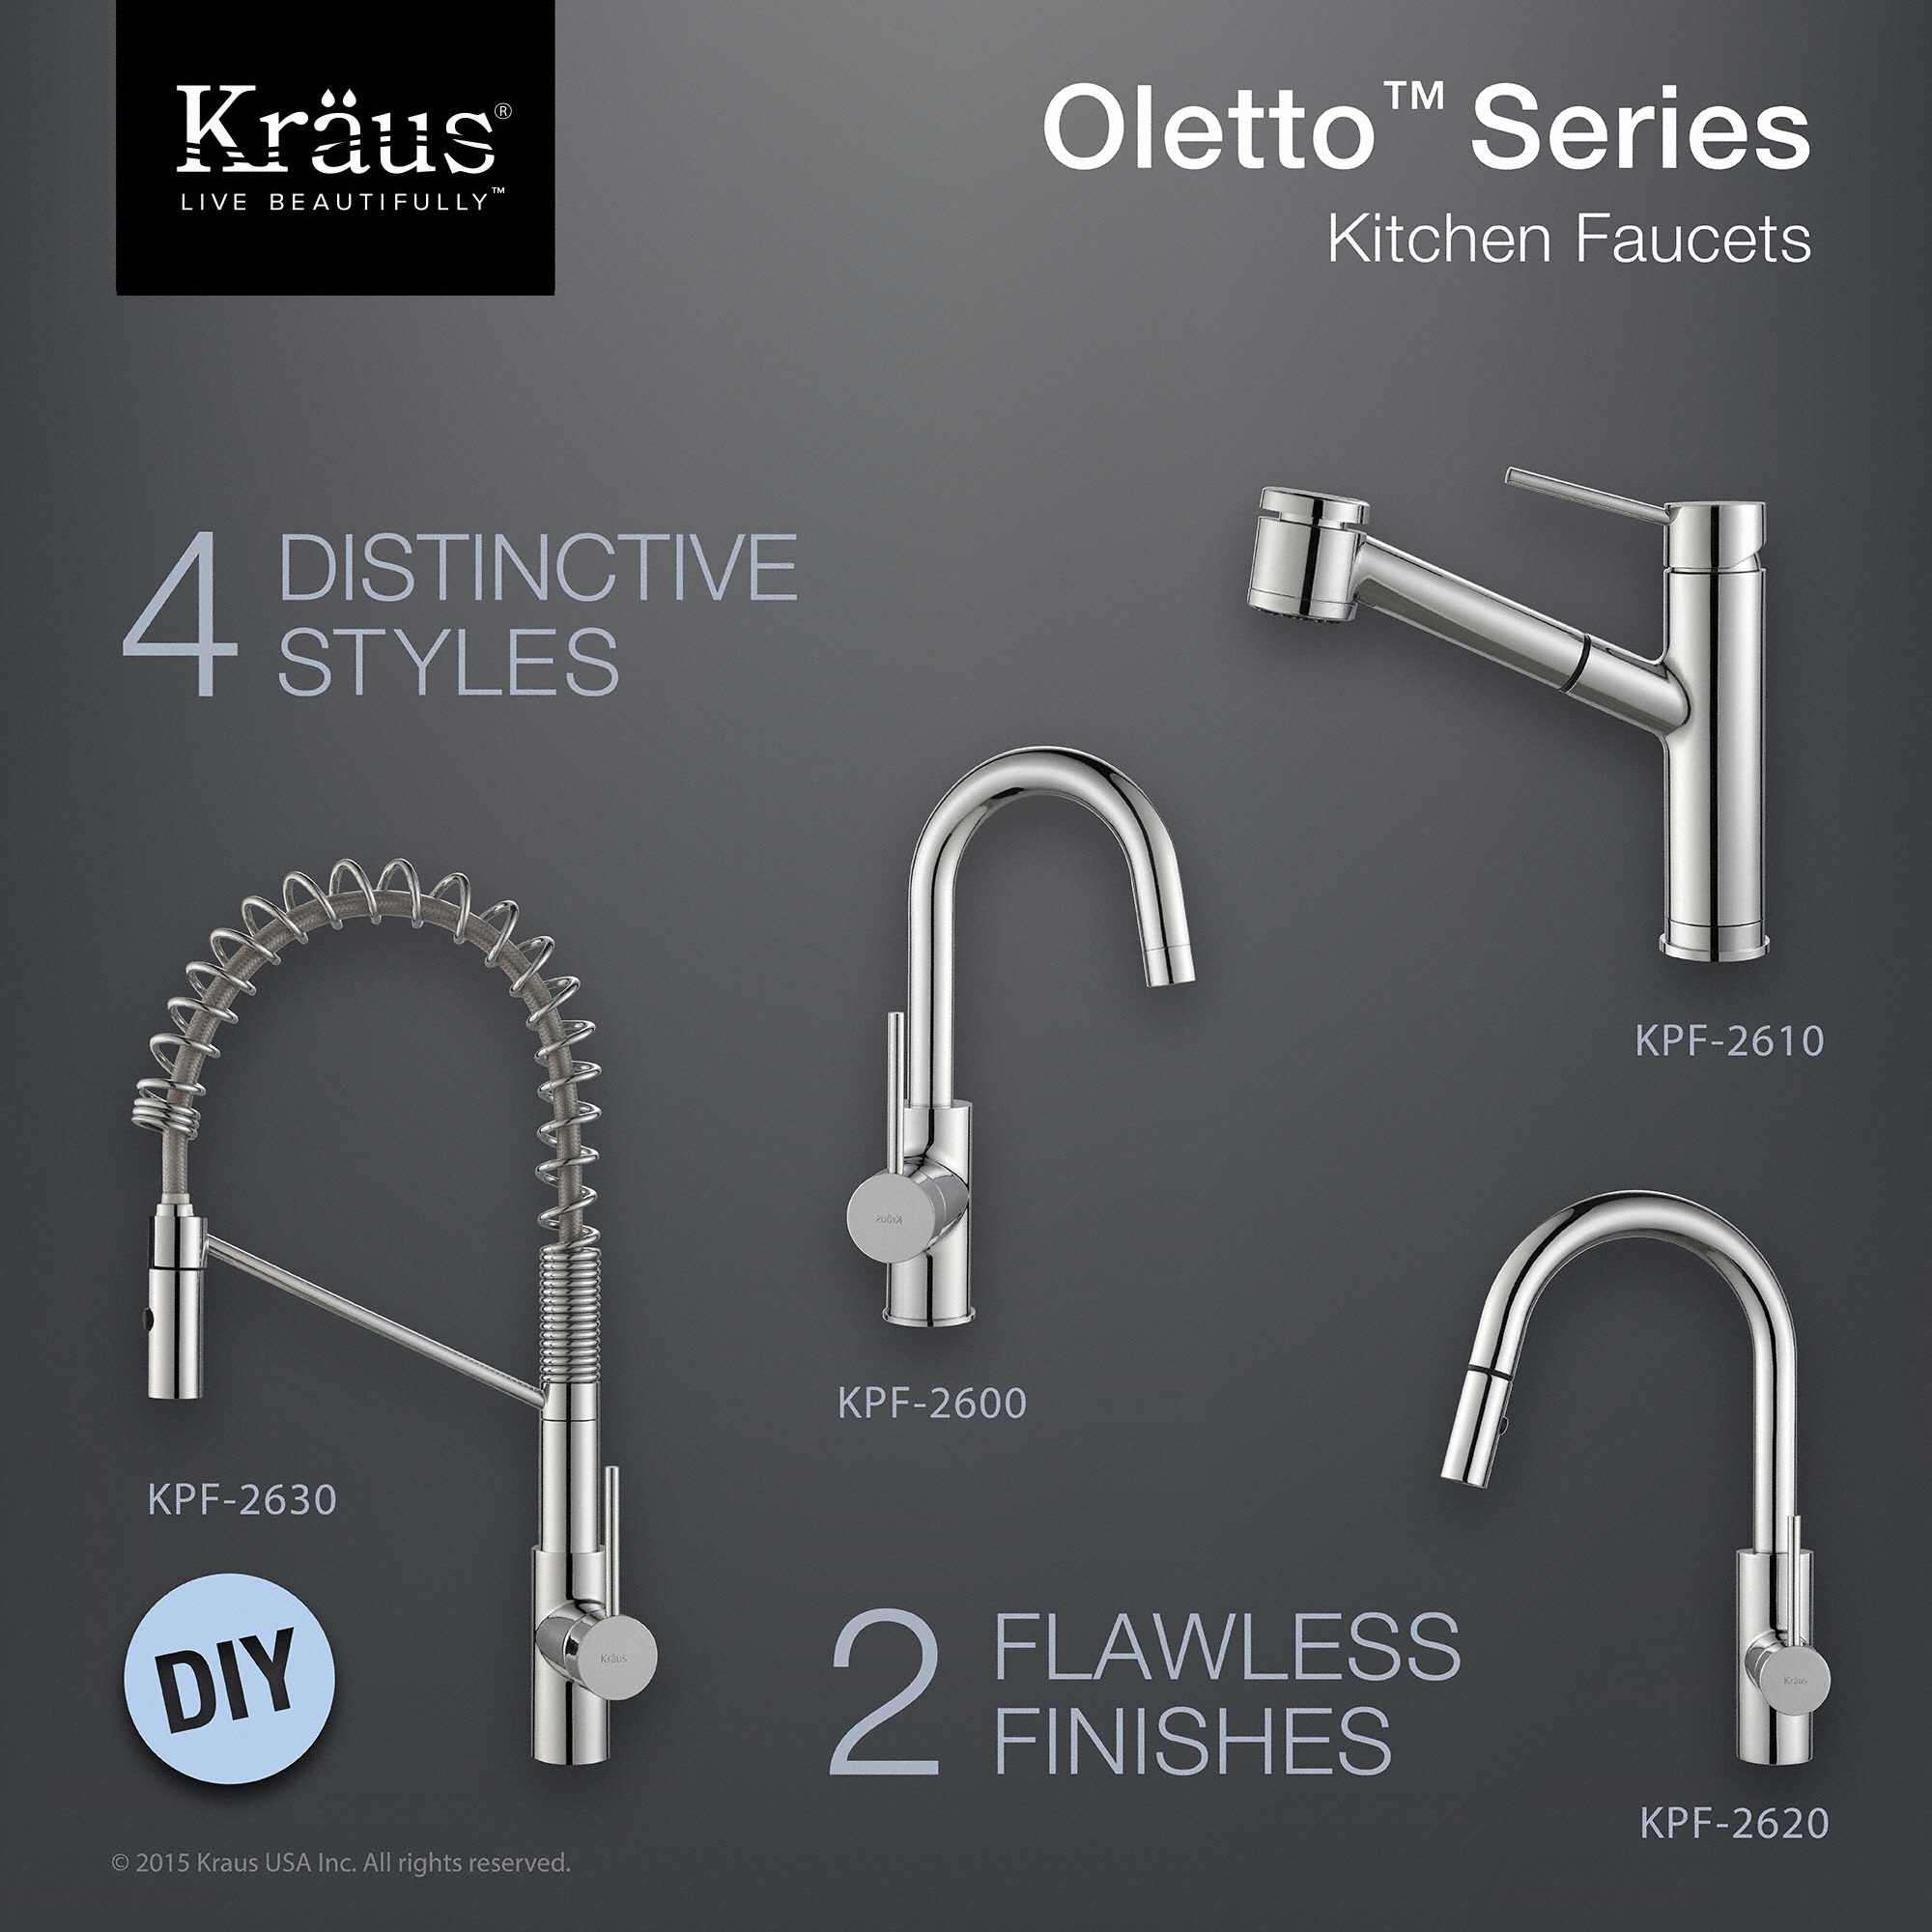 bolden kitchen kpf function down with inch faucets dual com single commercial pull faucet handle kraus kraususa